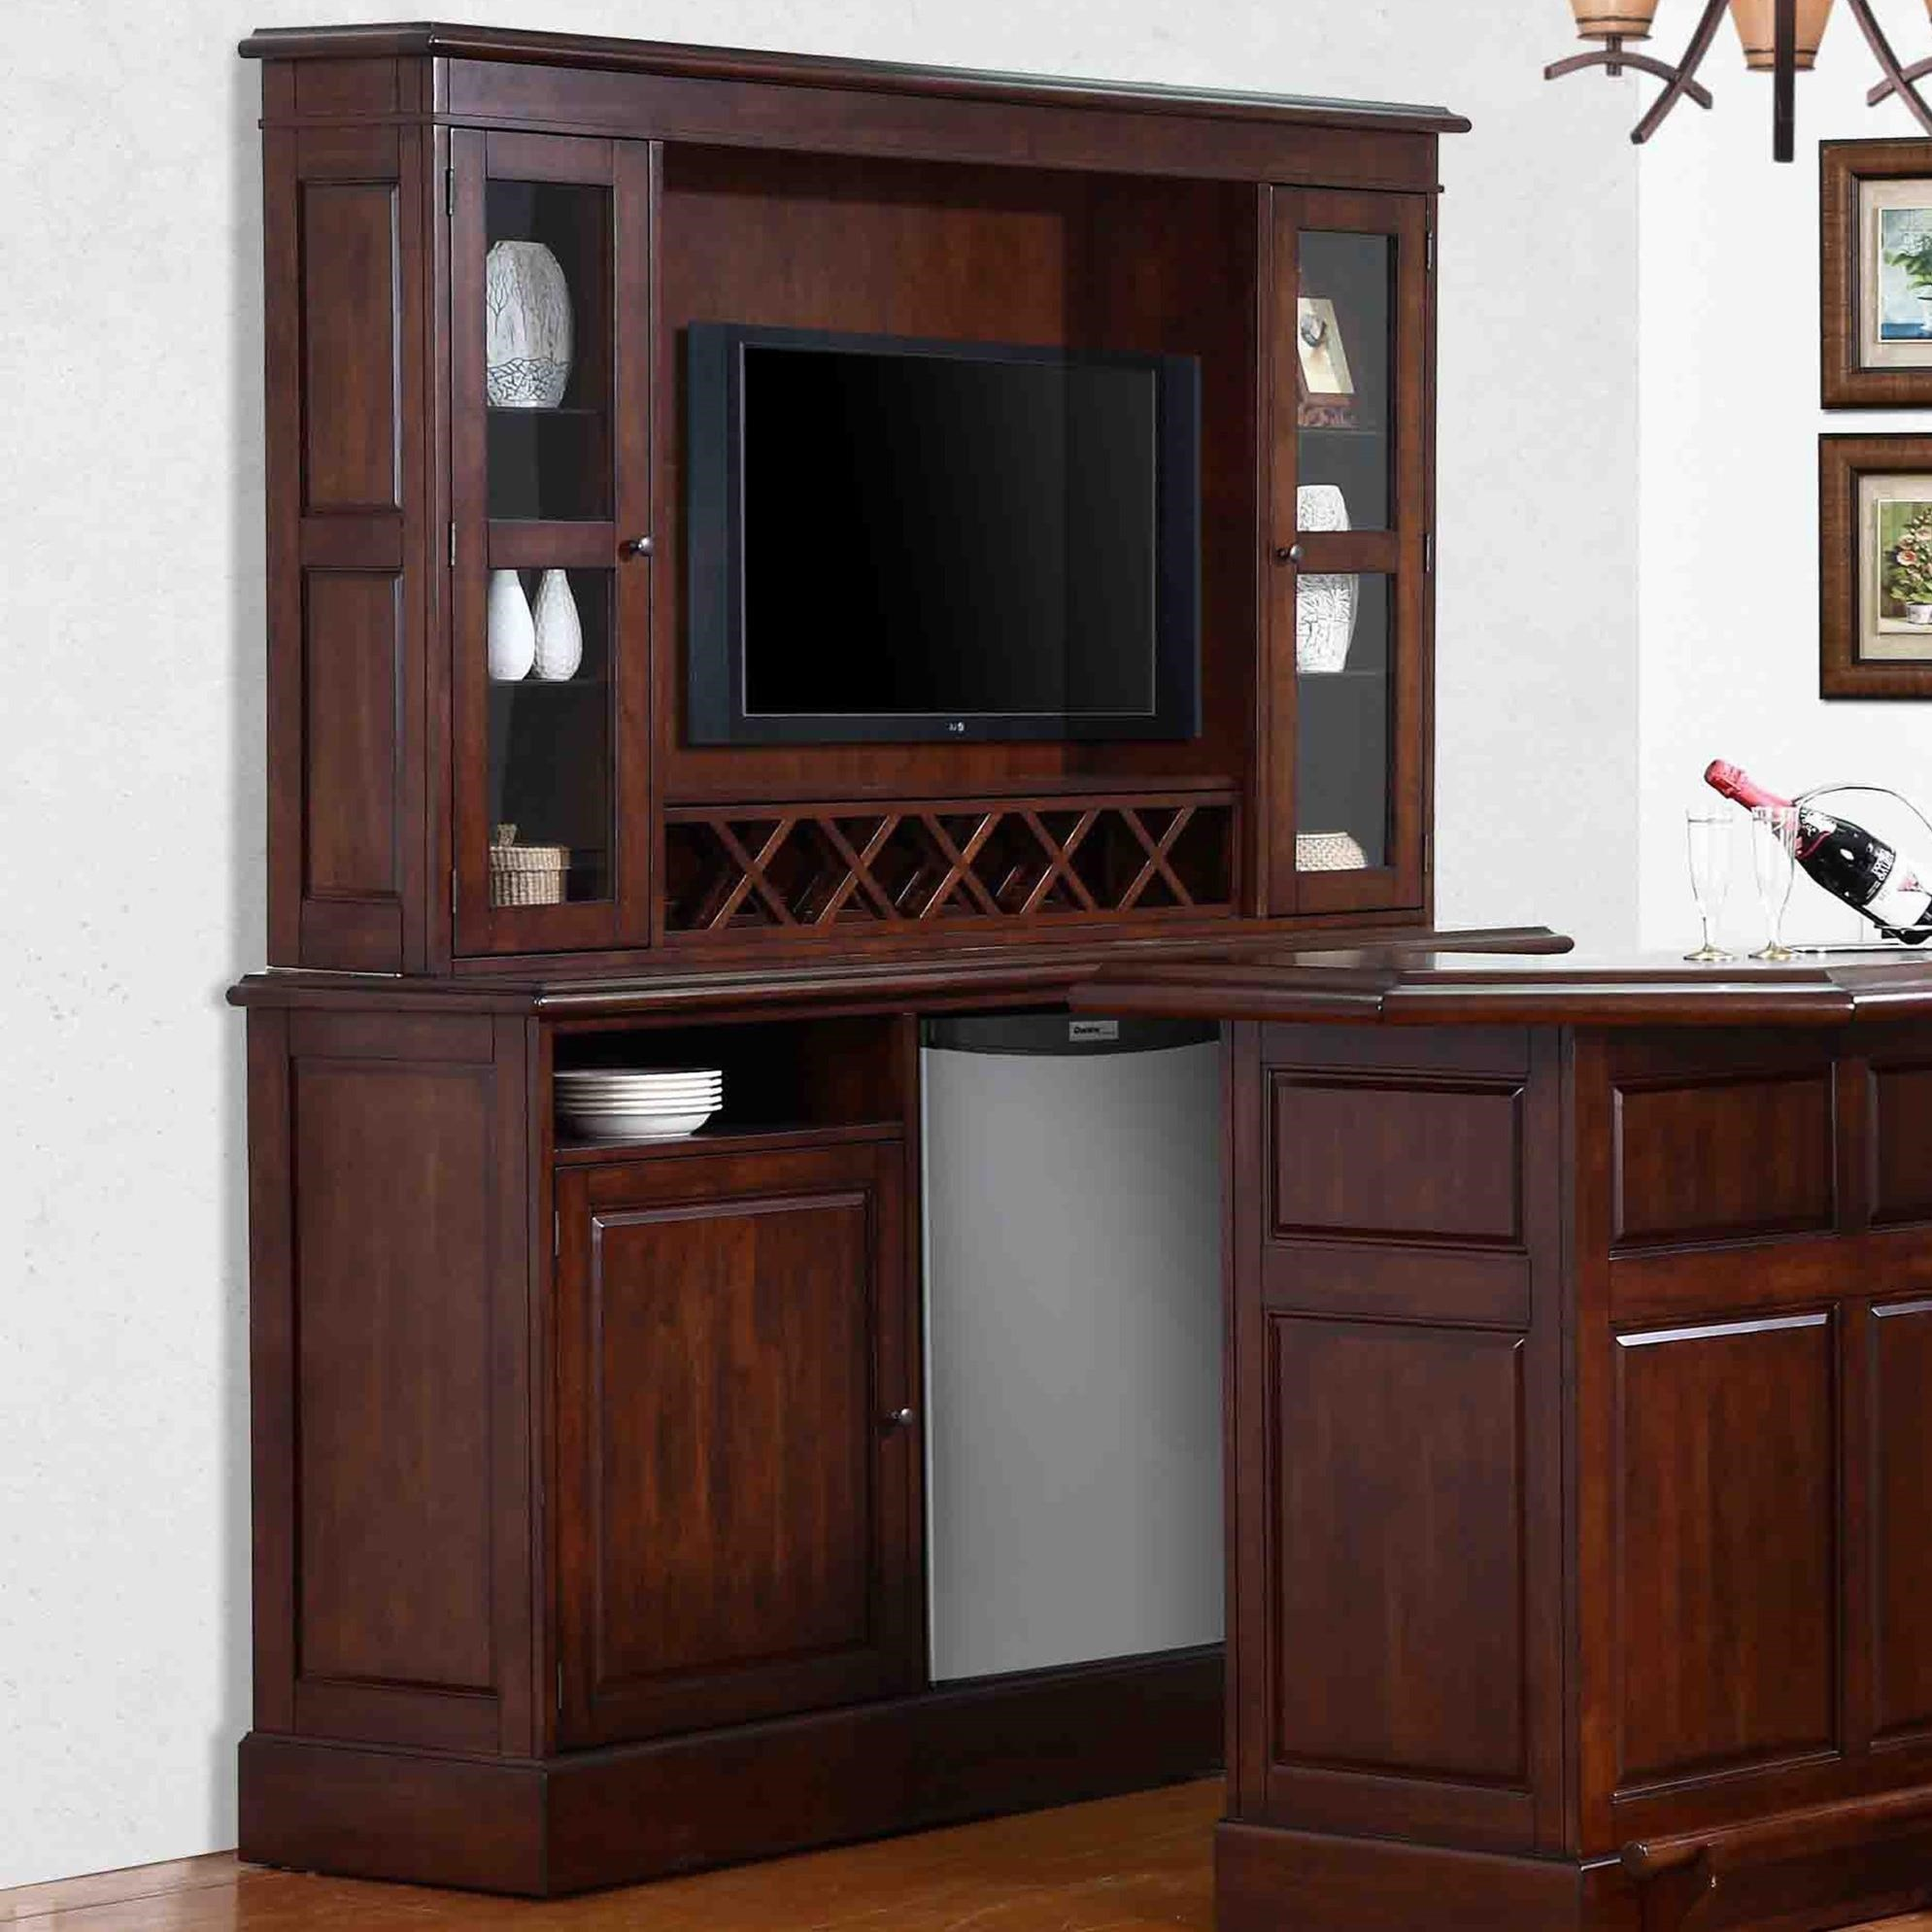 Picture of: E C I Furniture Belvedere 0411 Belvedere Back Bar With Hutch Wayside Furniture Bar Cabinets